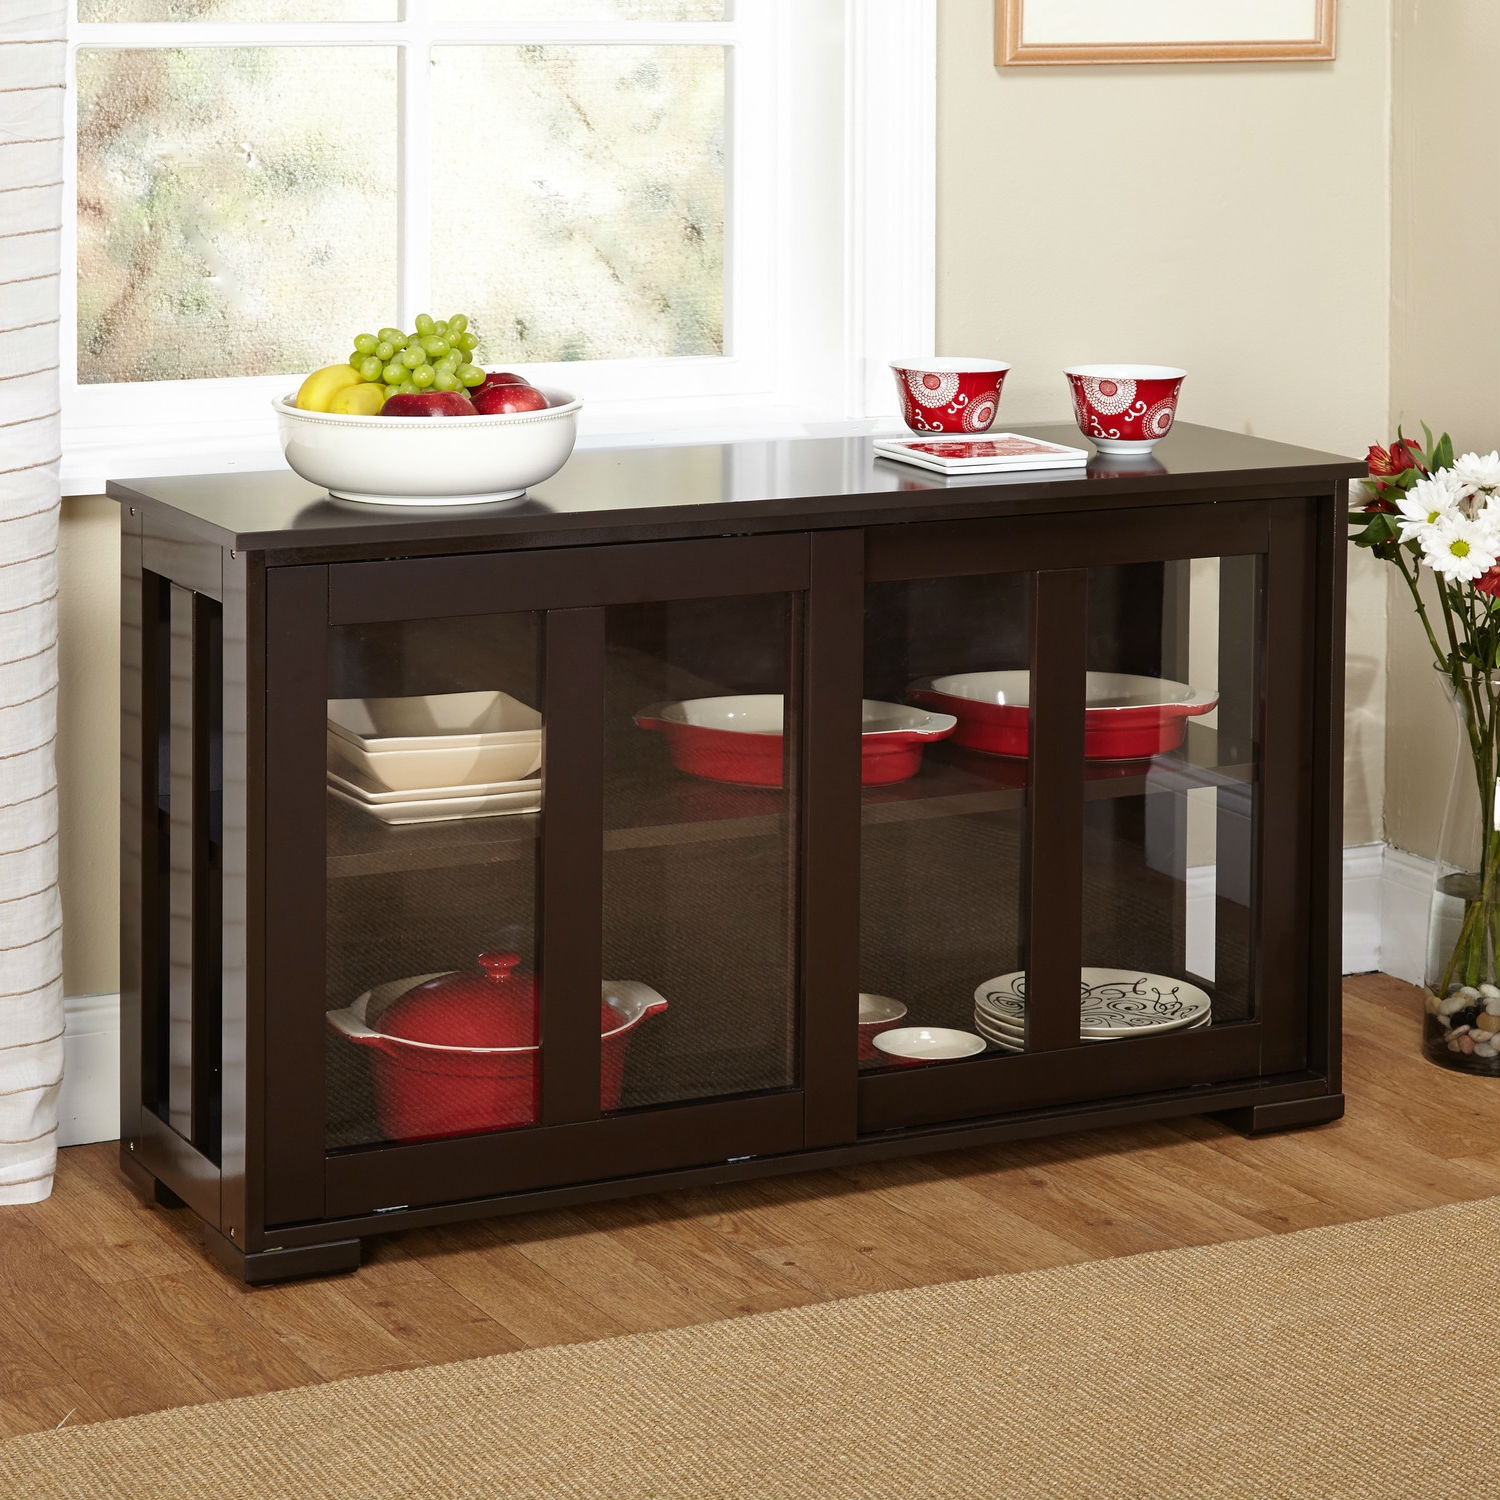 Espresso Sideboard Buffet Dining Kitchen Cabinet With 2